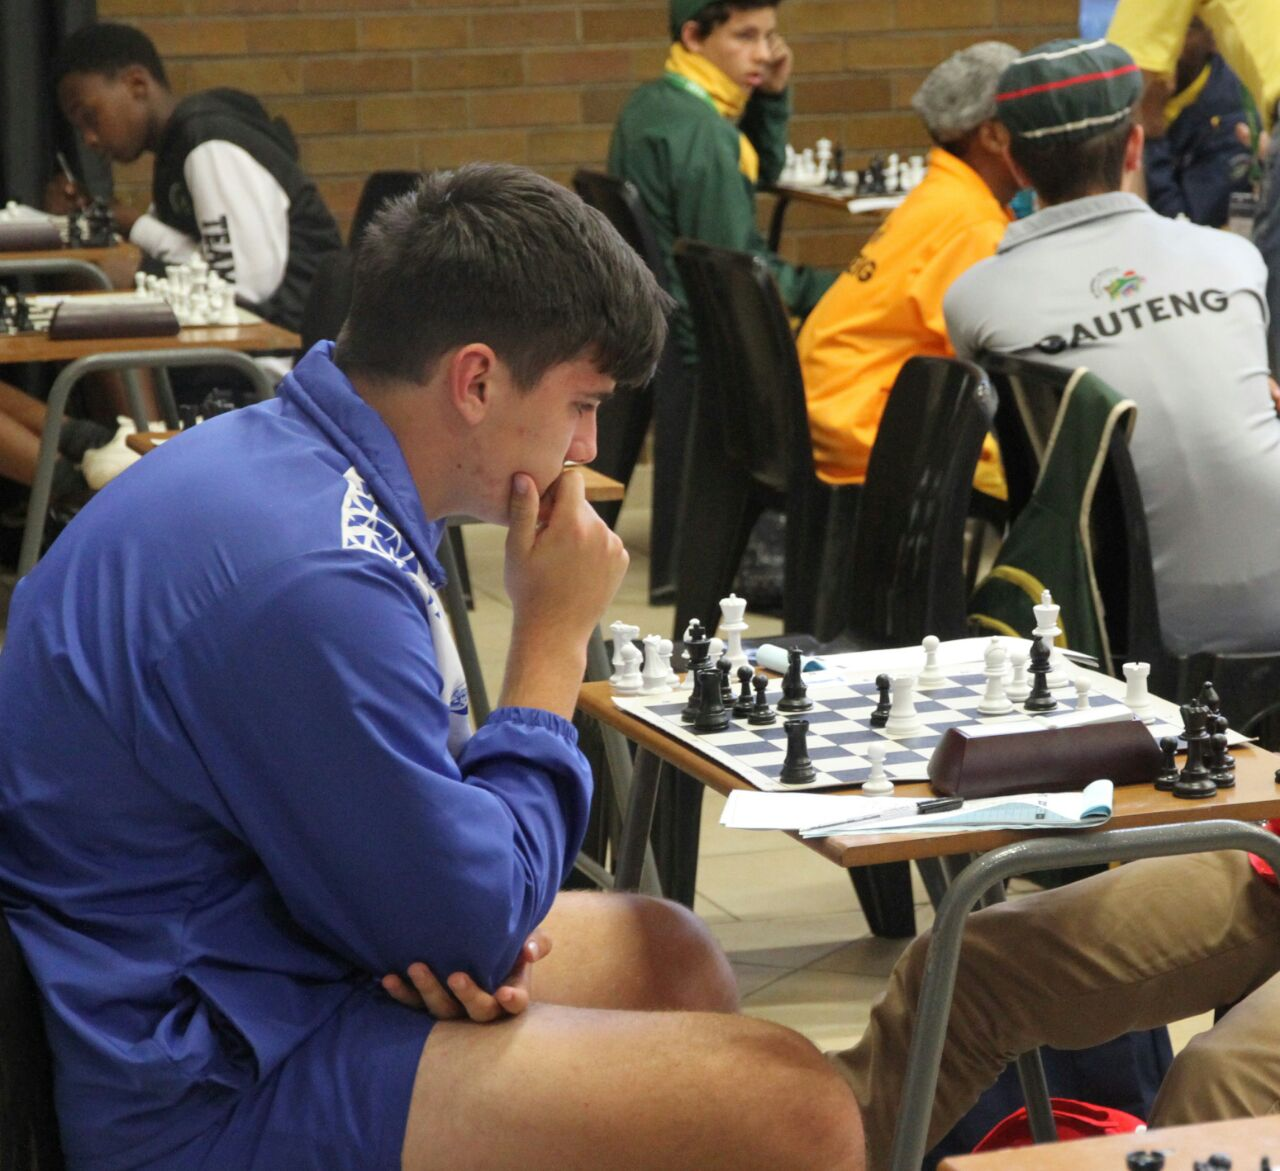 Deep concentration during a chess game